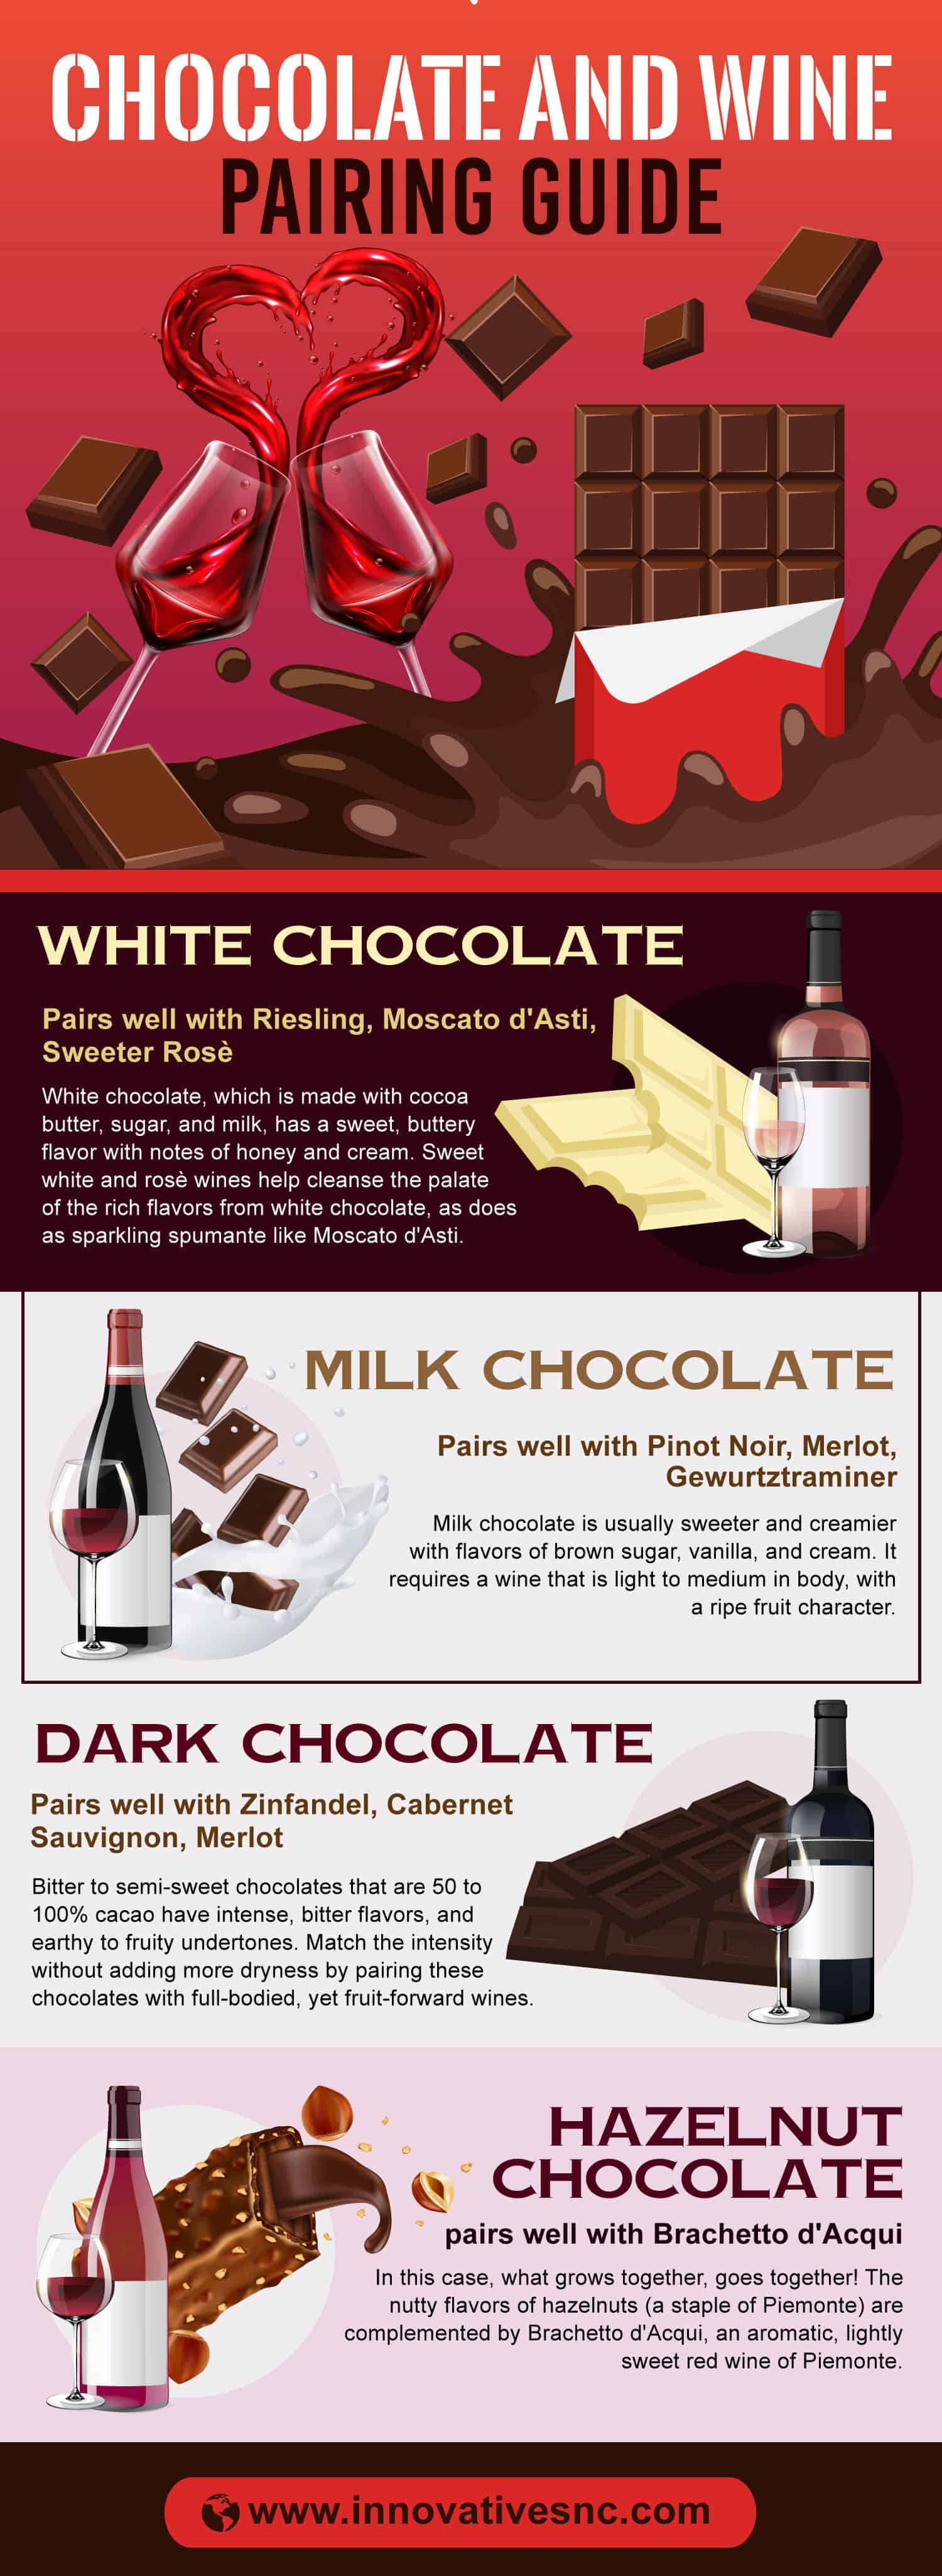 Chocolate And Wine Pairing Guide